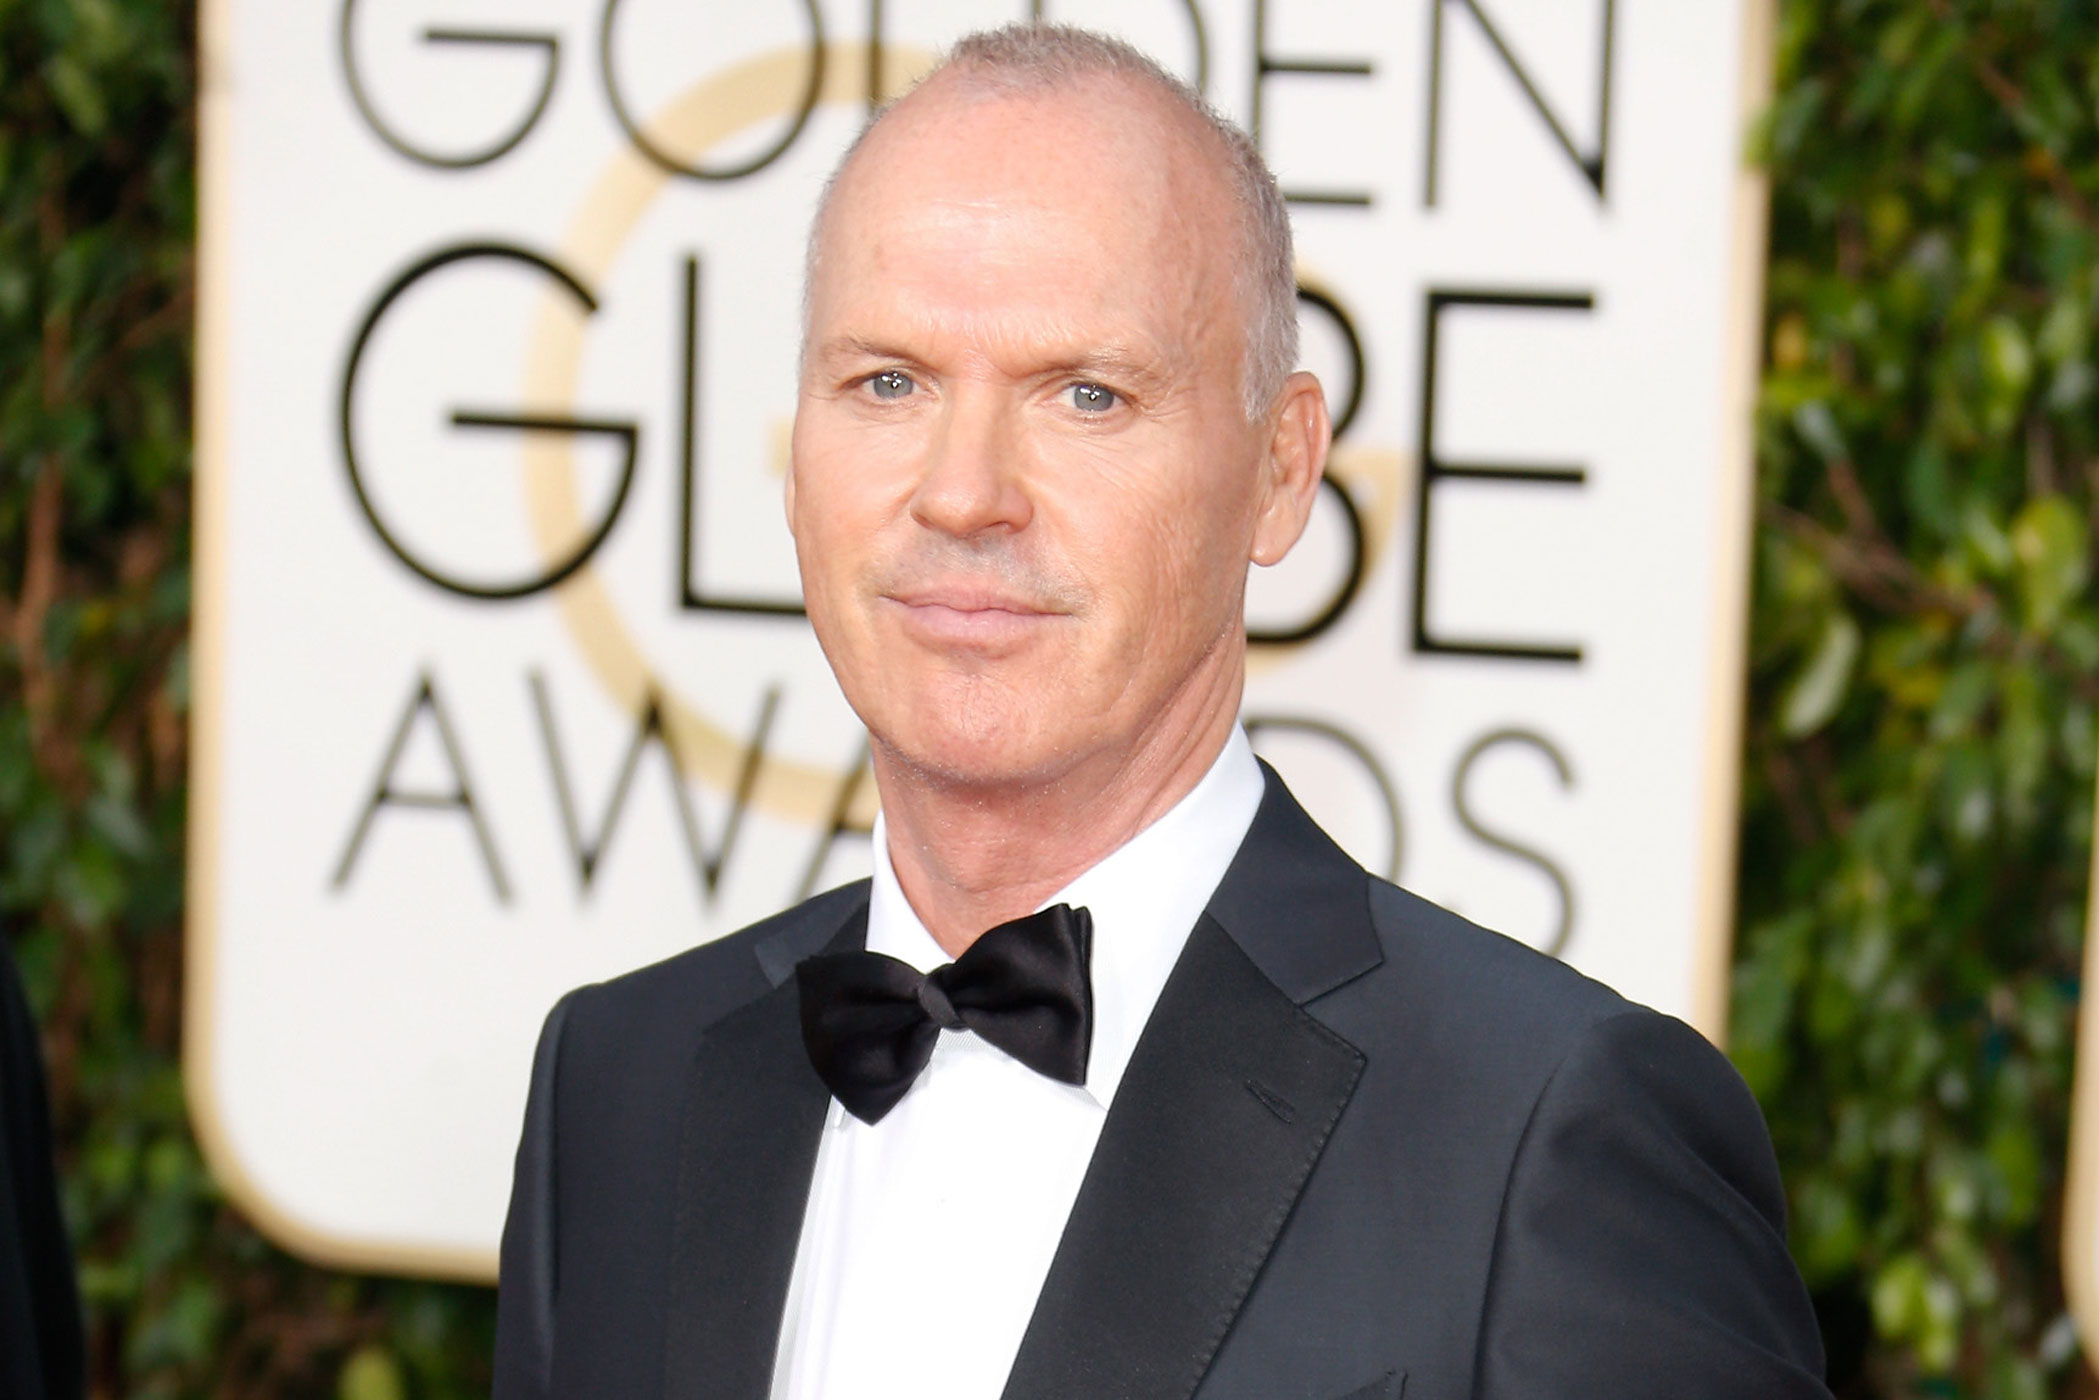 Michael Keaton attends the 72nd Annual Golden Globe Awards at The Beverly Hilton Hotel on Jan. 11, 2015 in Beverly Hills, Calif.